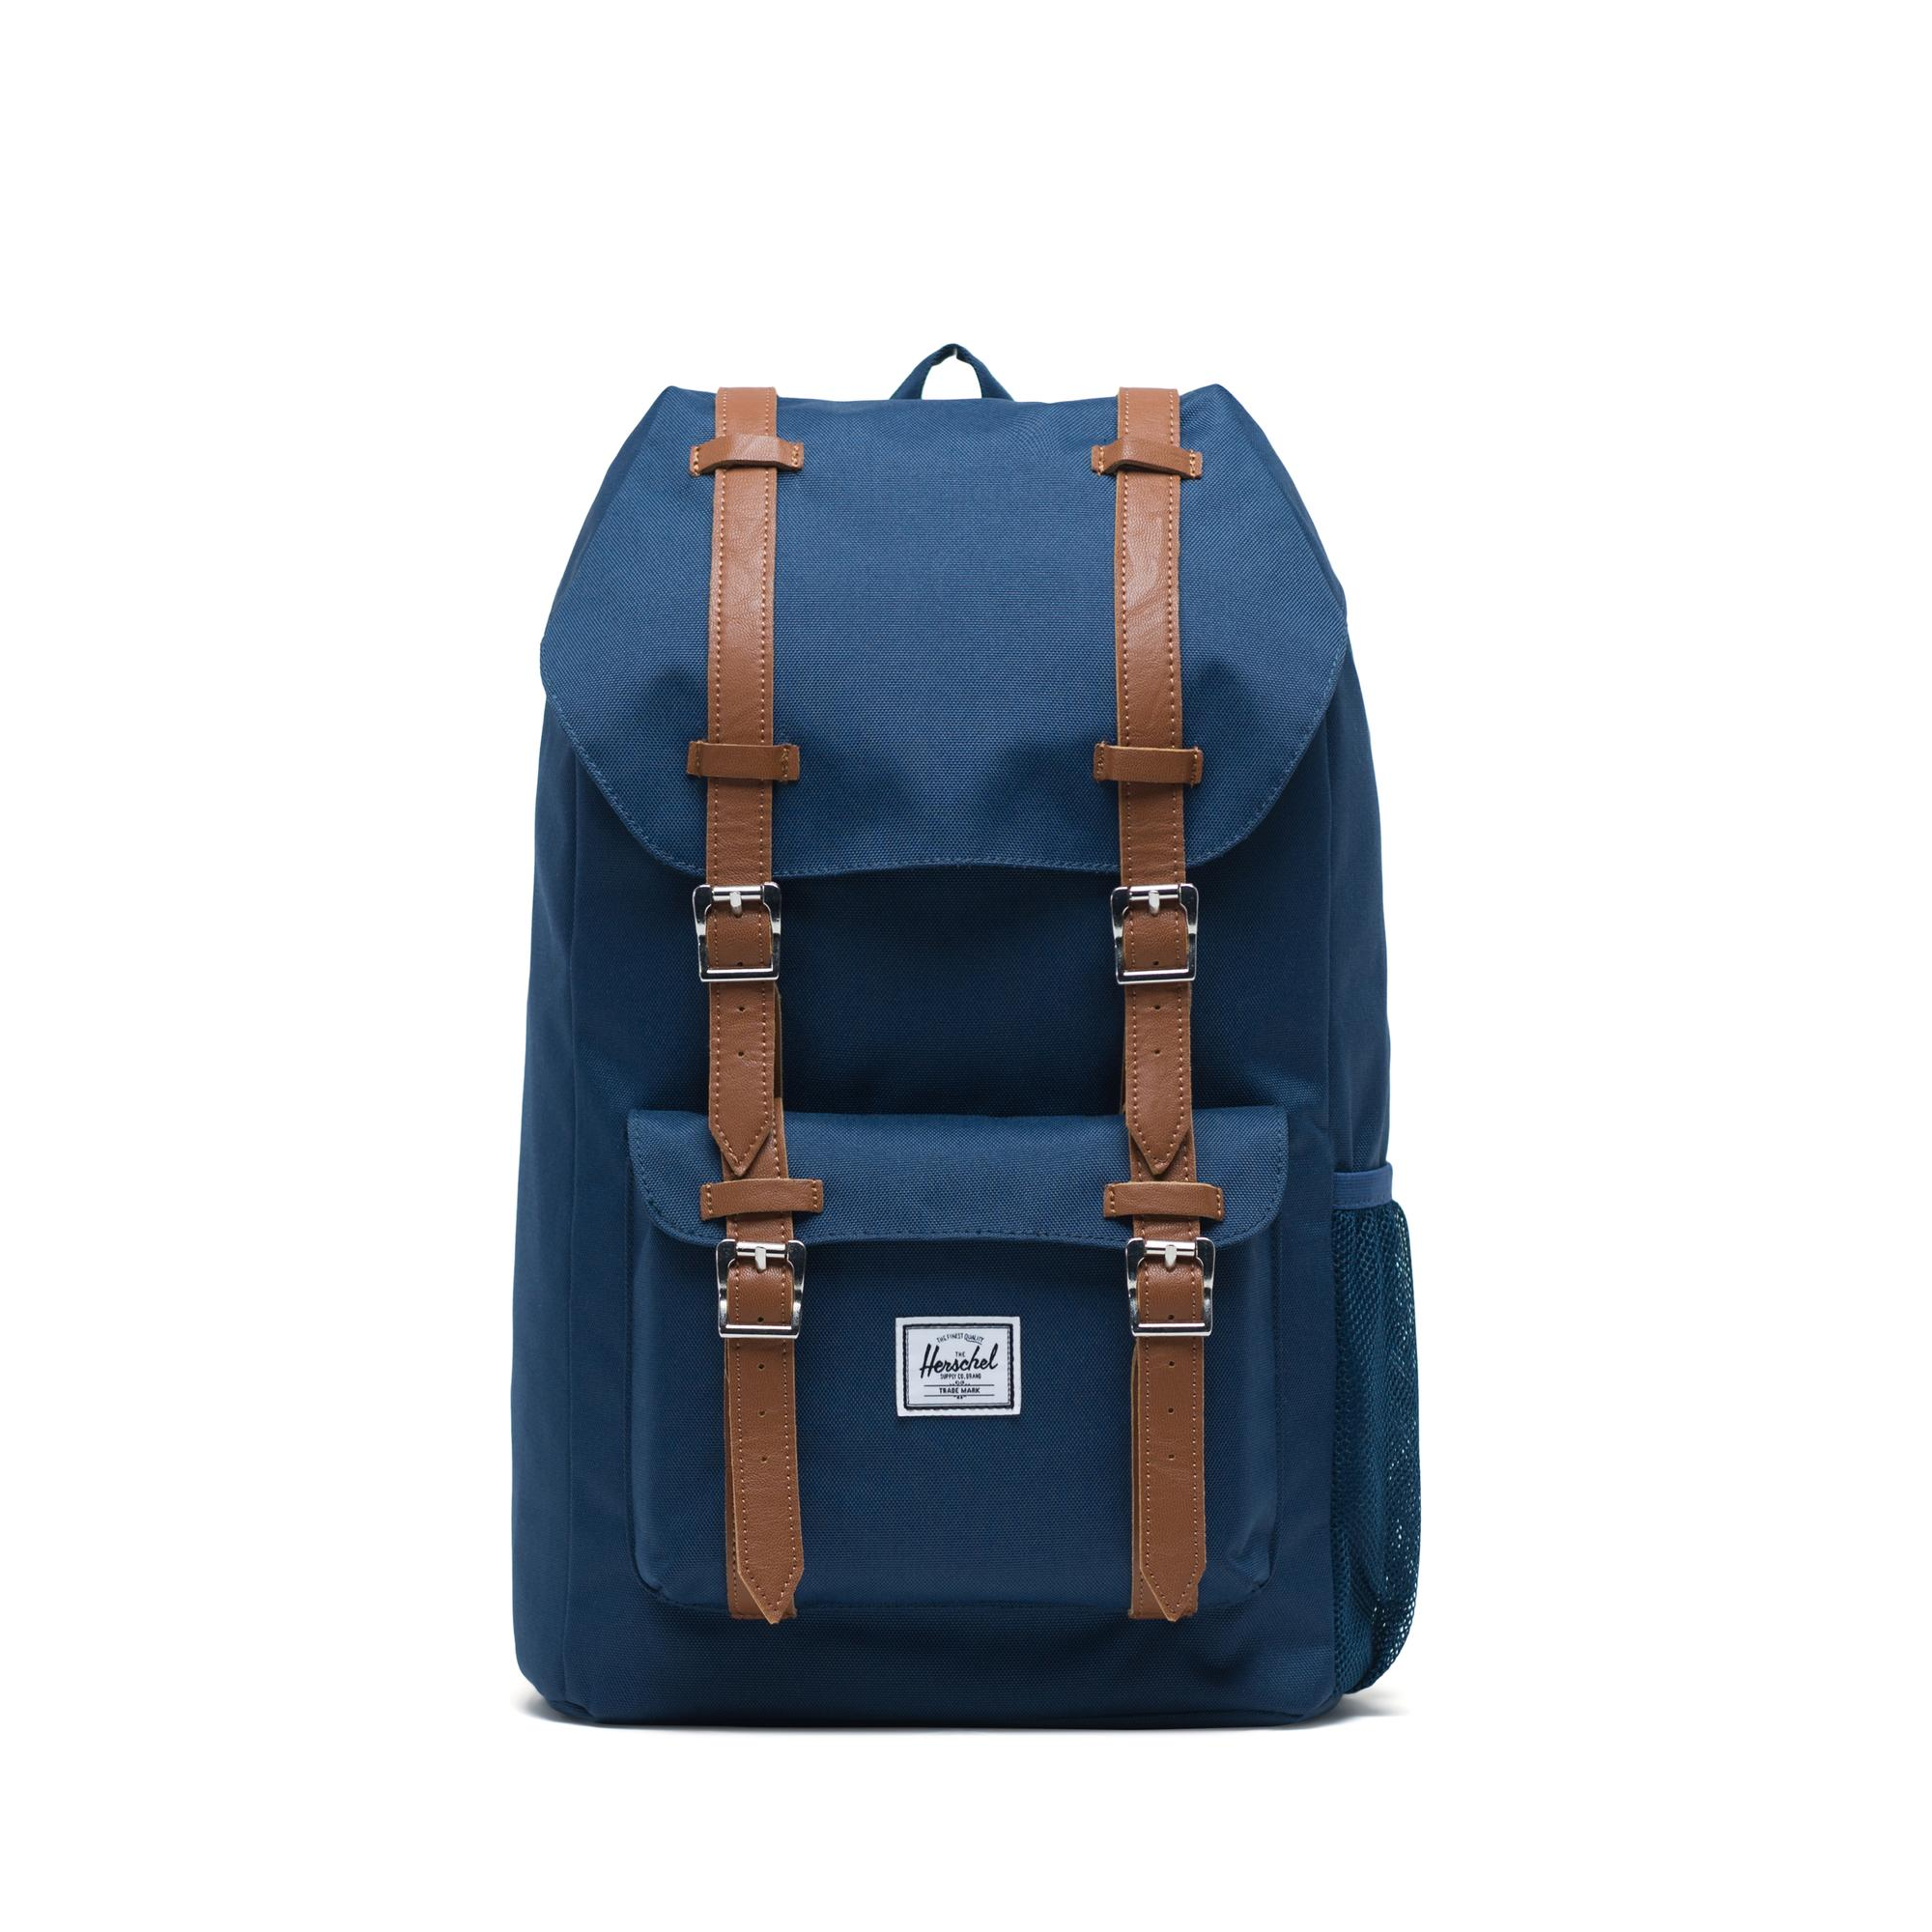 4590c3f395 Herschel Little America Backpack Youth